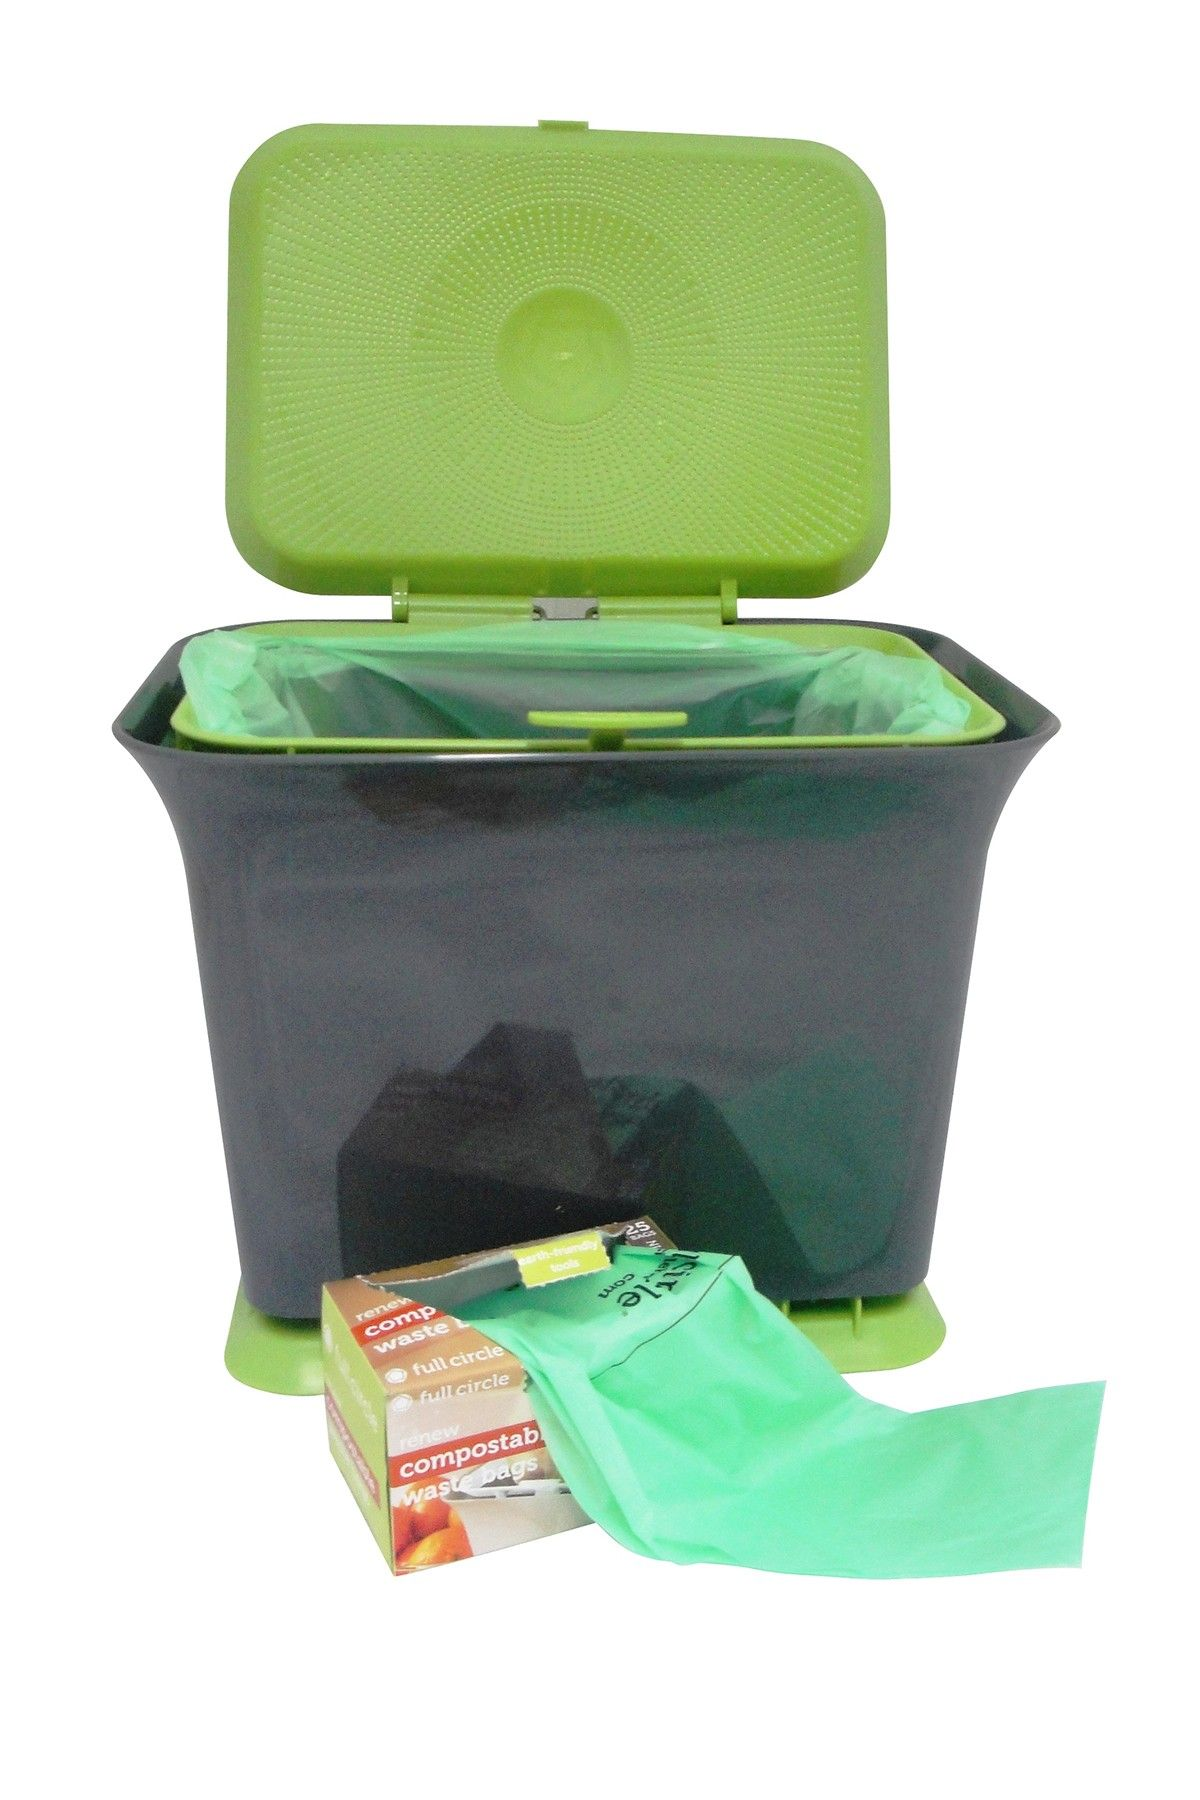 Green Slate Fresh Air Counter Composter By Full Circle On